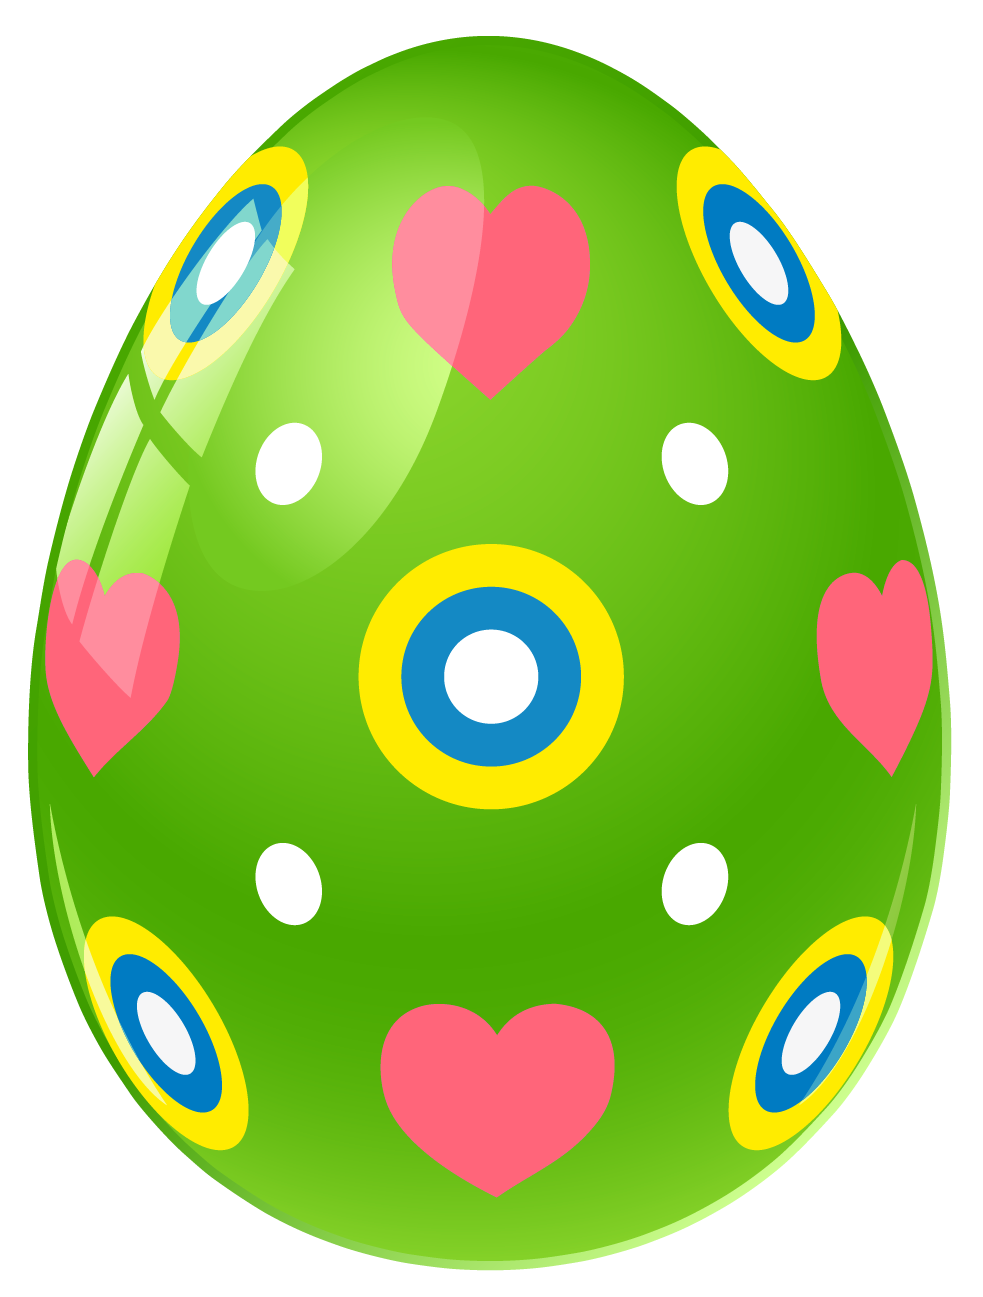 pin by marina on páscoa iv pinterest easter egg and